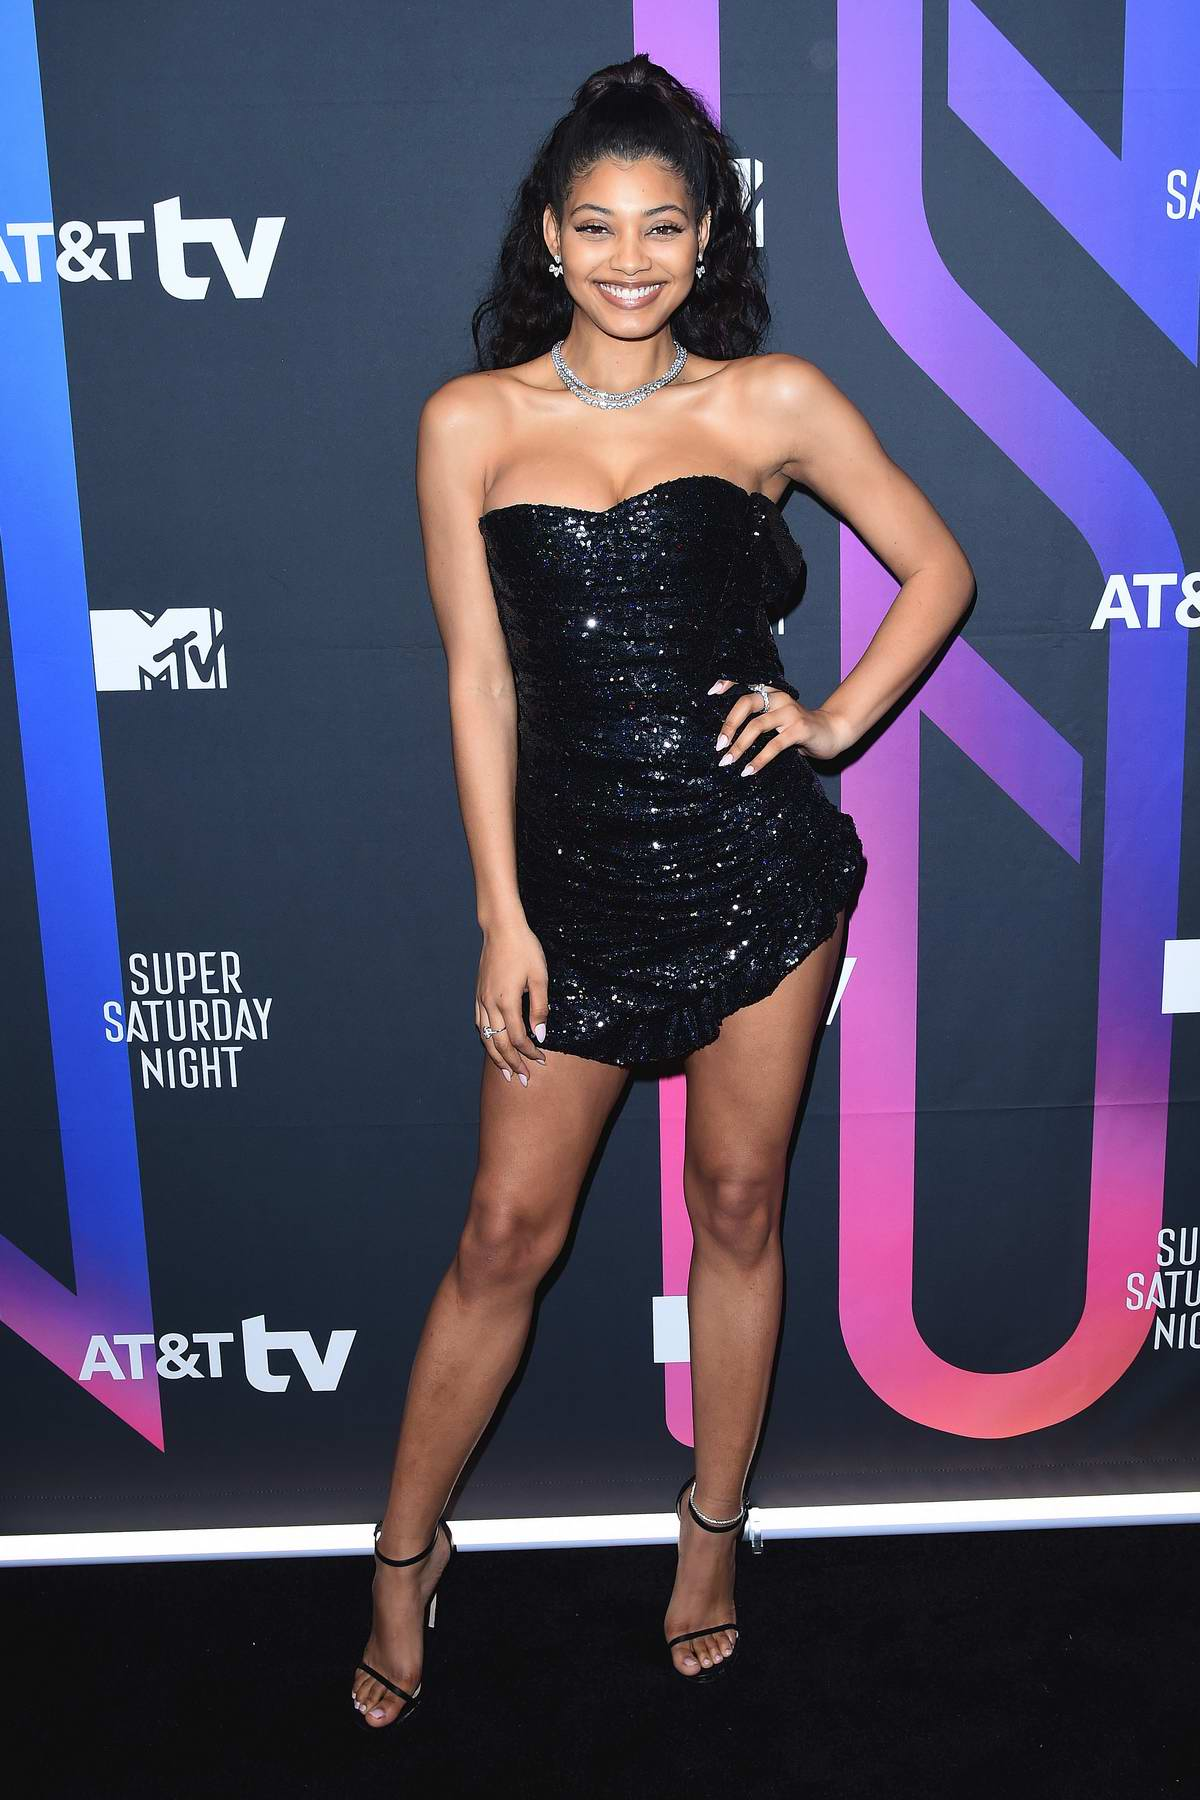 Danielle Herrington attends the AT&T TV Super Saturday Night in Miami, Florida